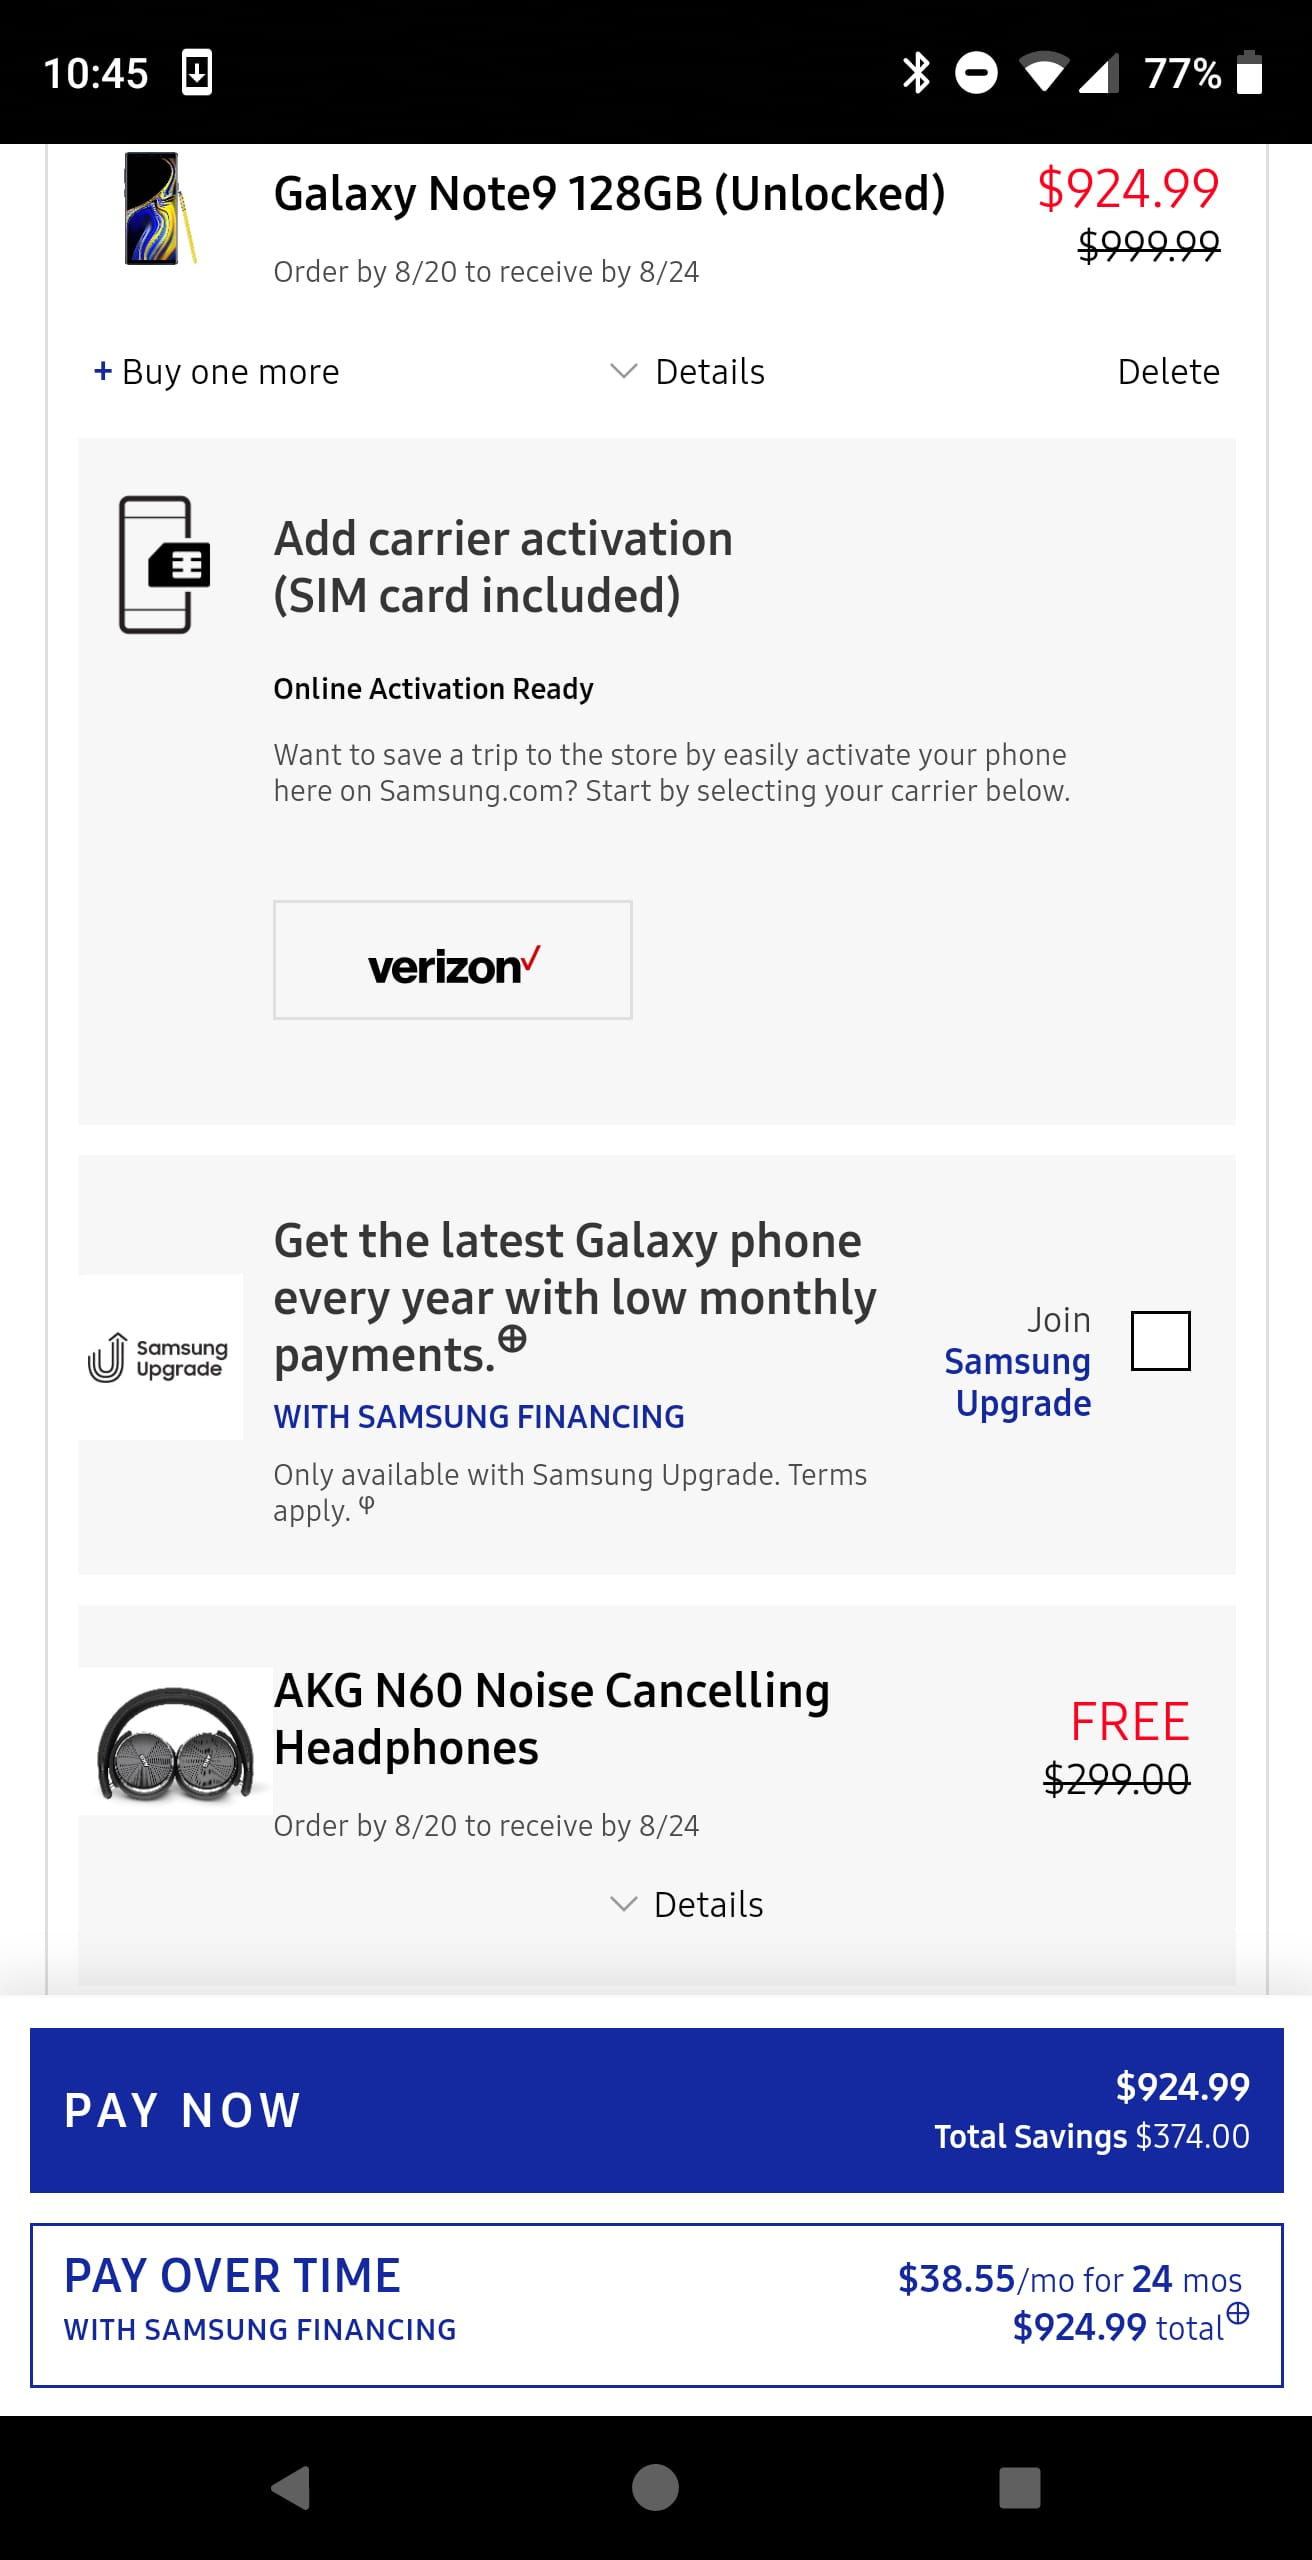 Samsung Note 9 pre order for $924.99 on Samsung.com with an EPP or unidays or edu discount